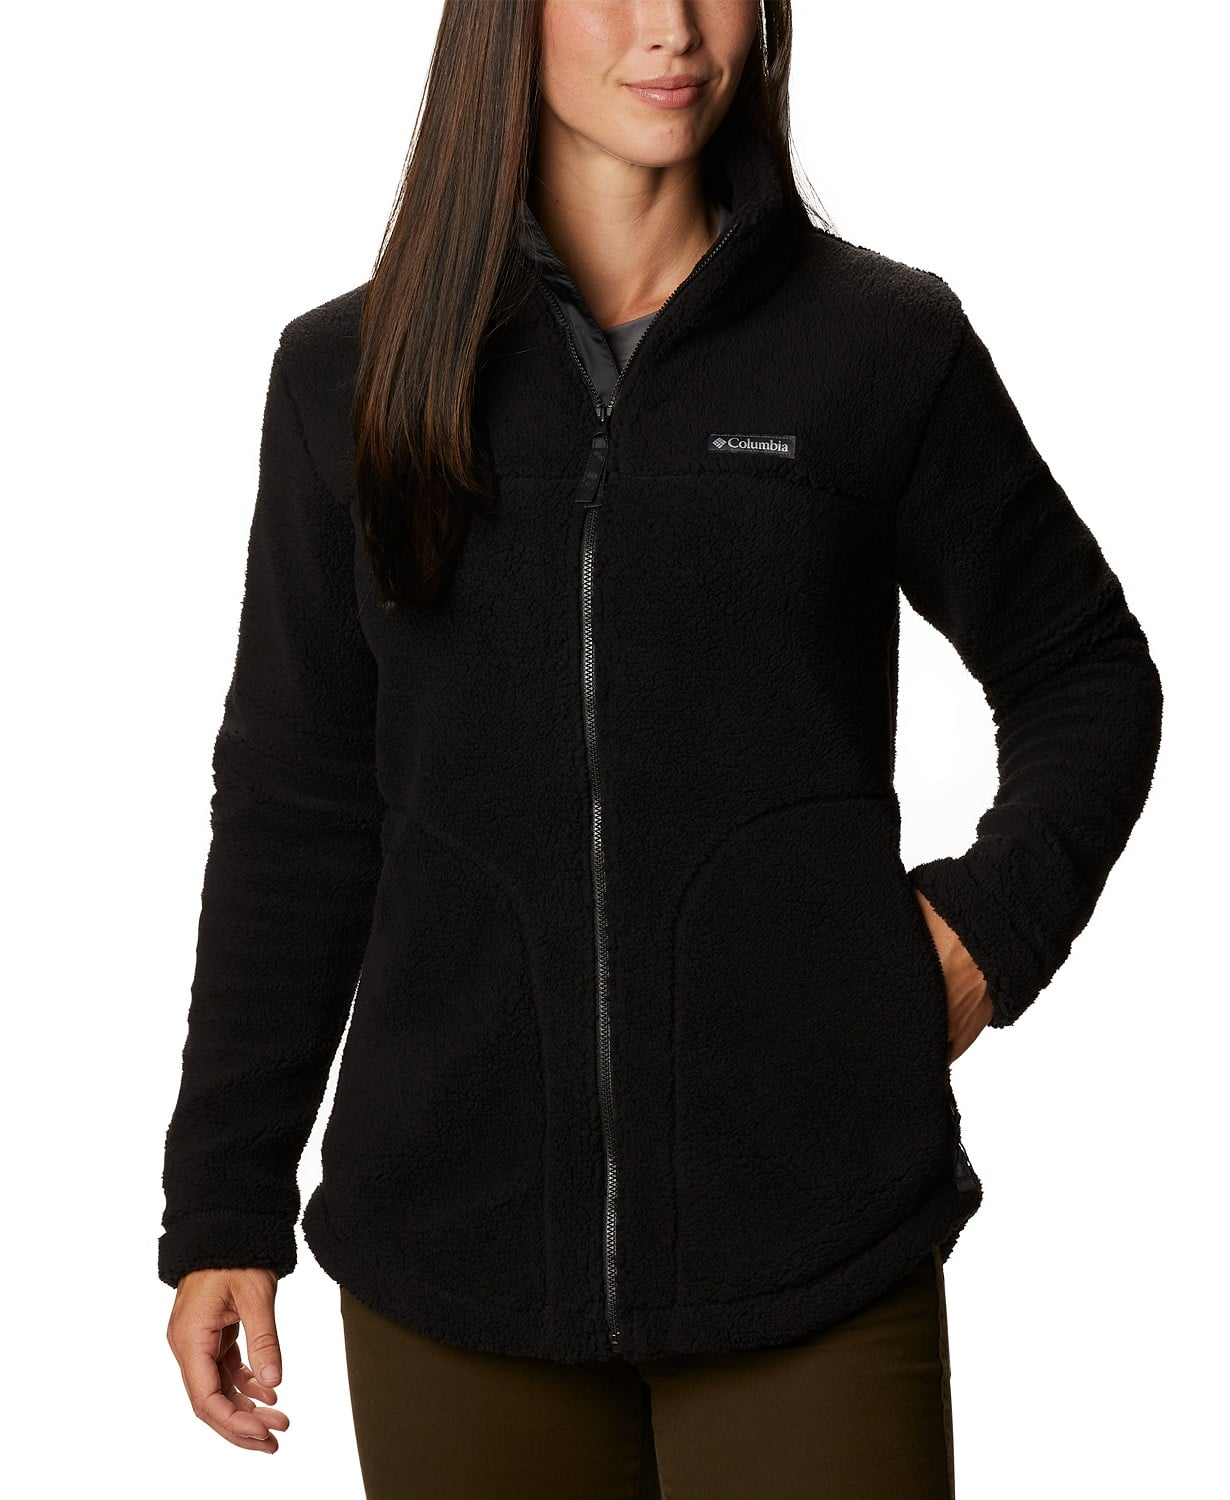 Columbia Women's West Bend Jacket (Camo, Black, or Chalk) $45 & More + Free Shipping